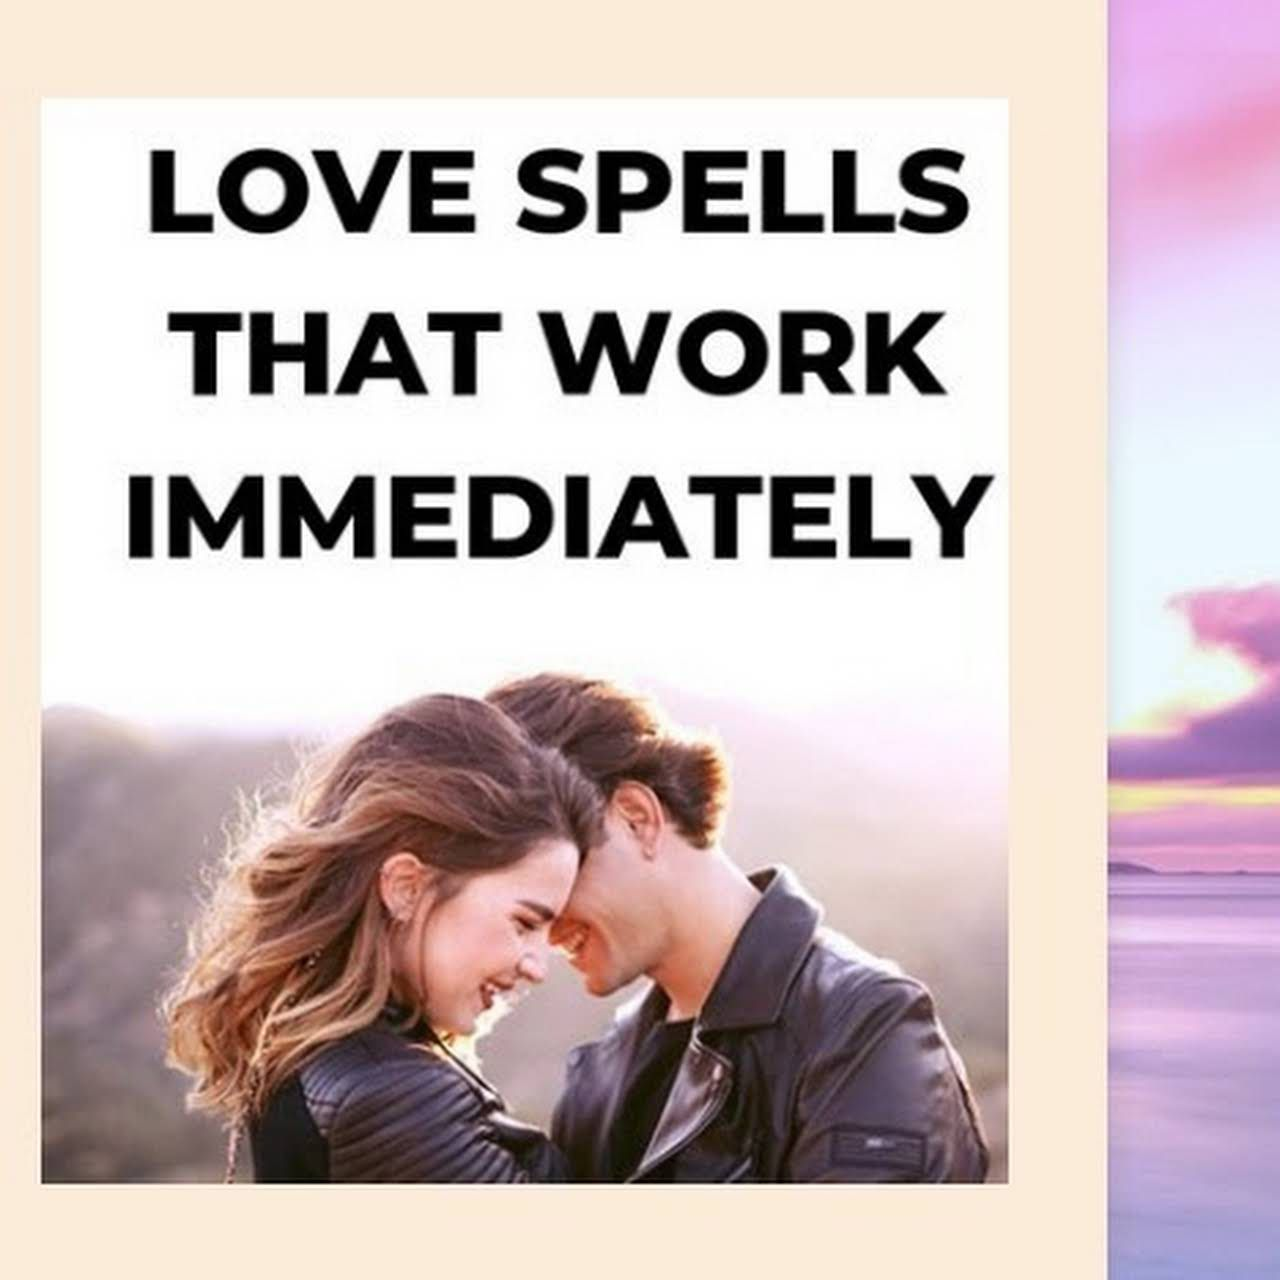 ONLINE LOST LOVE SPELLS CASTER Call On +27631229624 Witchcraft Love Spells That Work IN CHICAGO -TORONTO -Krugersdorp- Carltonville- Sasolburg- Vanderbijlpark Using my magical native lost love spells, I can bring back your ex-husband to you , if you still love them and want them back. Even if they have remarried my lost love spells will bring them back and they will love you once again. Why should you be lonely when there is someone out there who have a strong connection with and truly love. Lost love spells to bring back a ex-wife Did you realize how much you loved your wife after your divorce, maybe you even made the divorce request yourself. Are you regretting that your sweetheart is now your ex-wife Get my lost love spells for man to bring back a ex-wife.